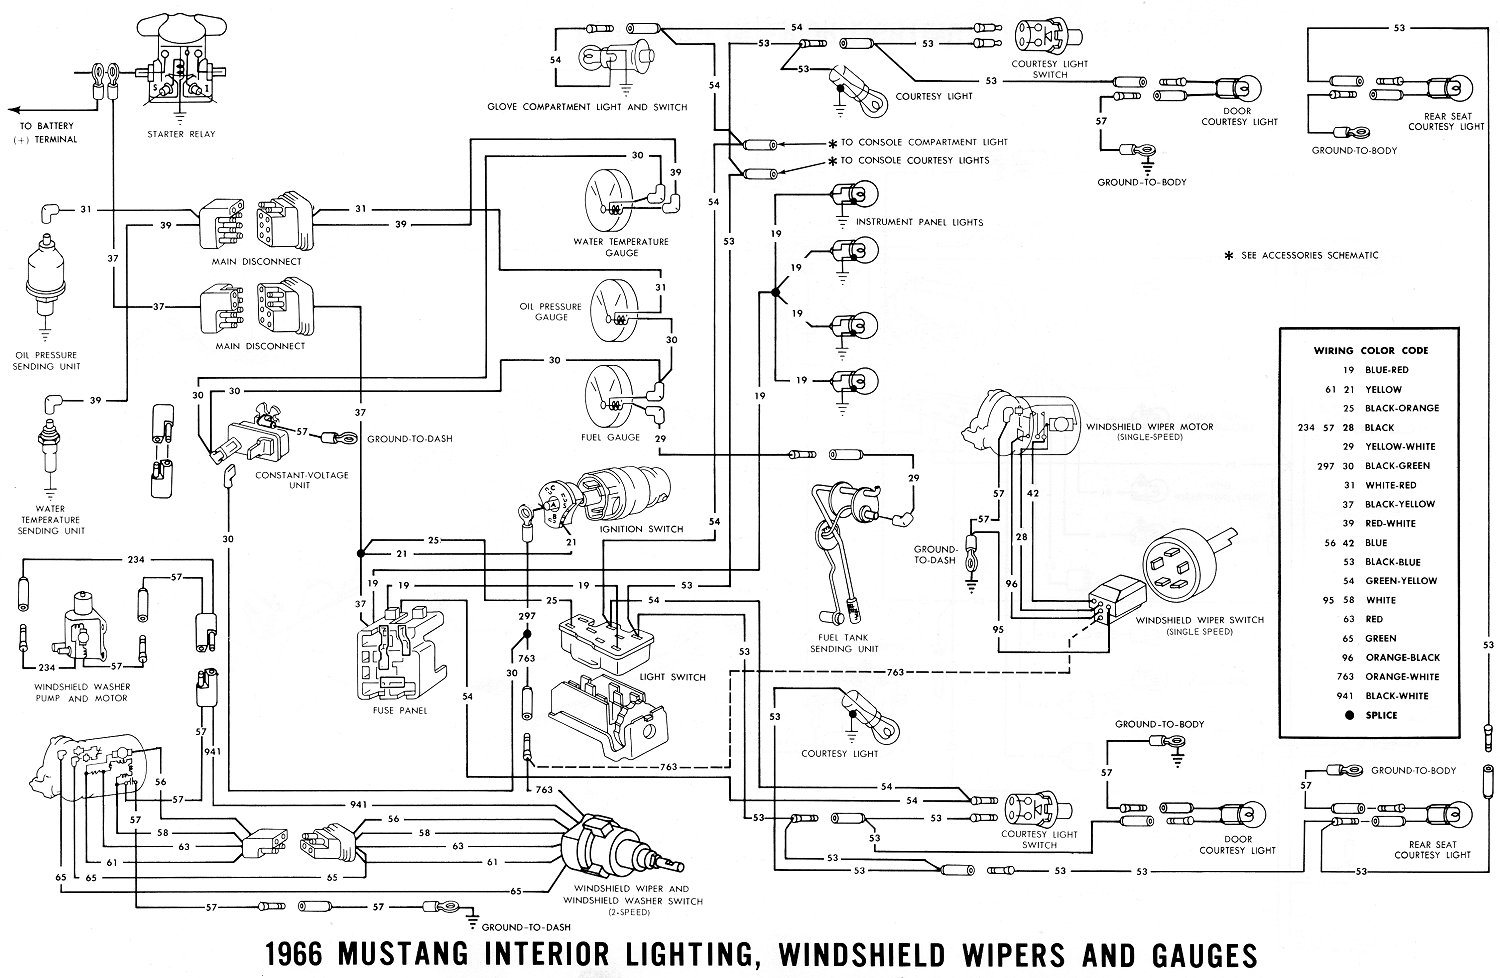 70 Mustang Wiring Diagram Reinvent Your 75 Dodge Truck Wiper Vintage Diagrams Rh Midlife66 Com 1970 Download